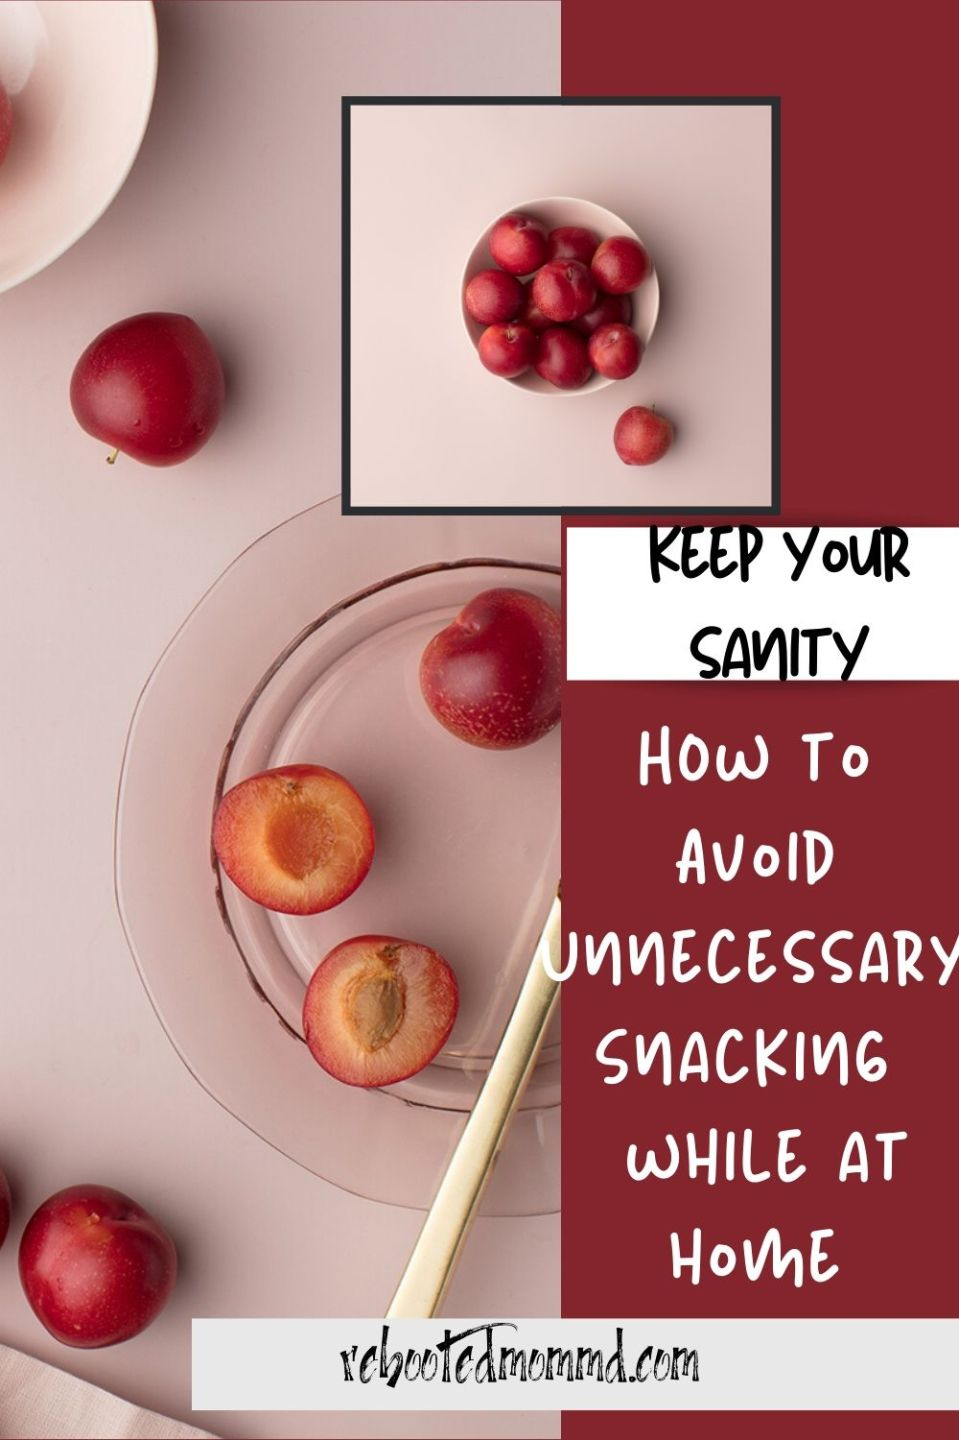 How to Avoid Unnecessary Snacking When Stuck at Home